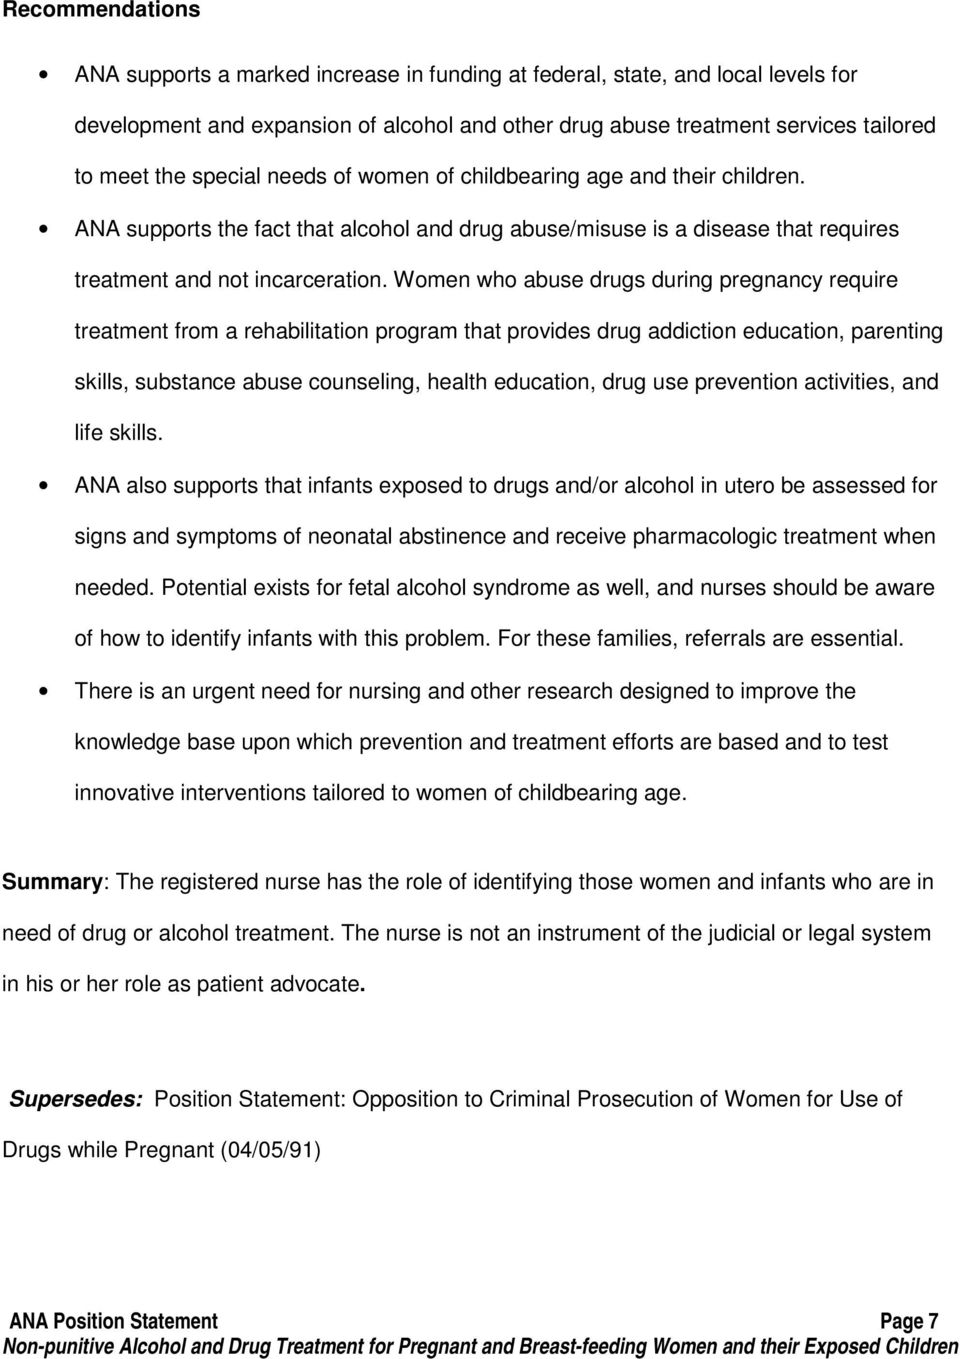 Women who abuse drugs during pregnancy require treatment from a rehabilitation program that provides drug addiction education, parenting skills, substance abuse counseling, health education, drug use